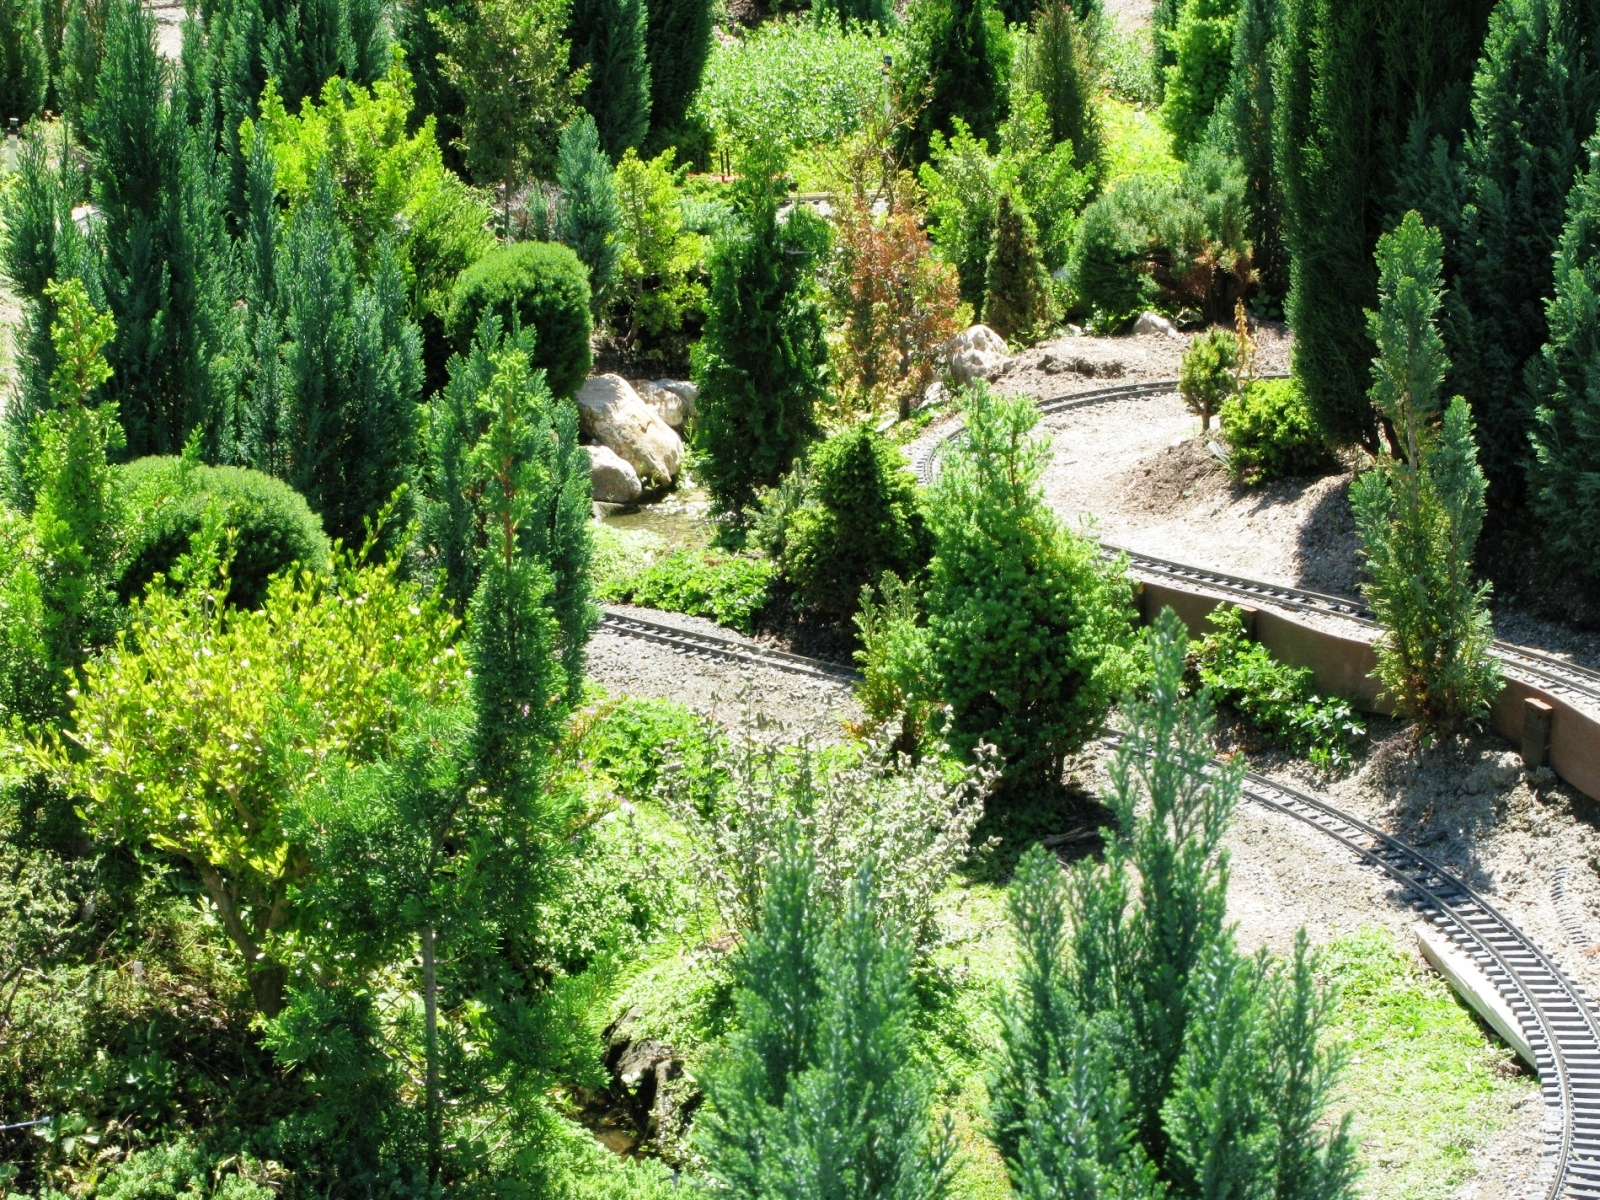 ericksen Trains are lost from sight among the magnificent trees!